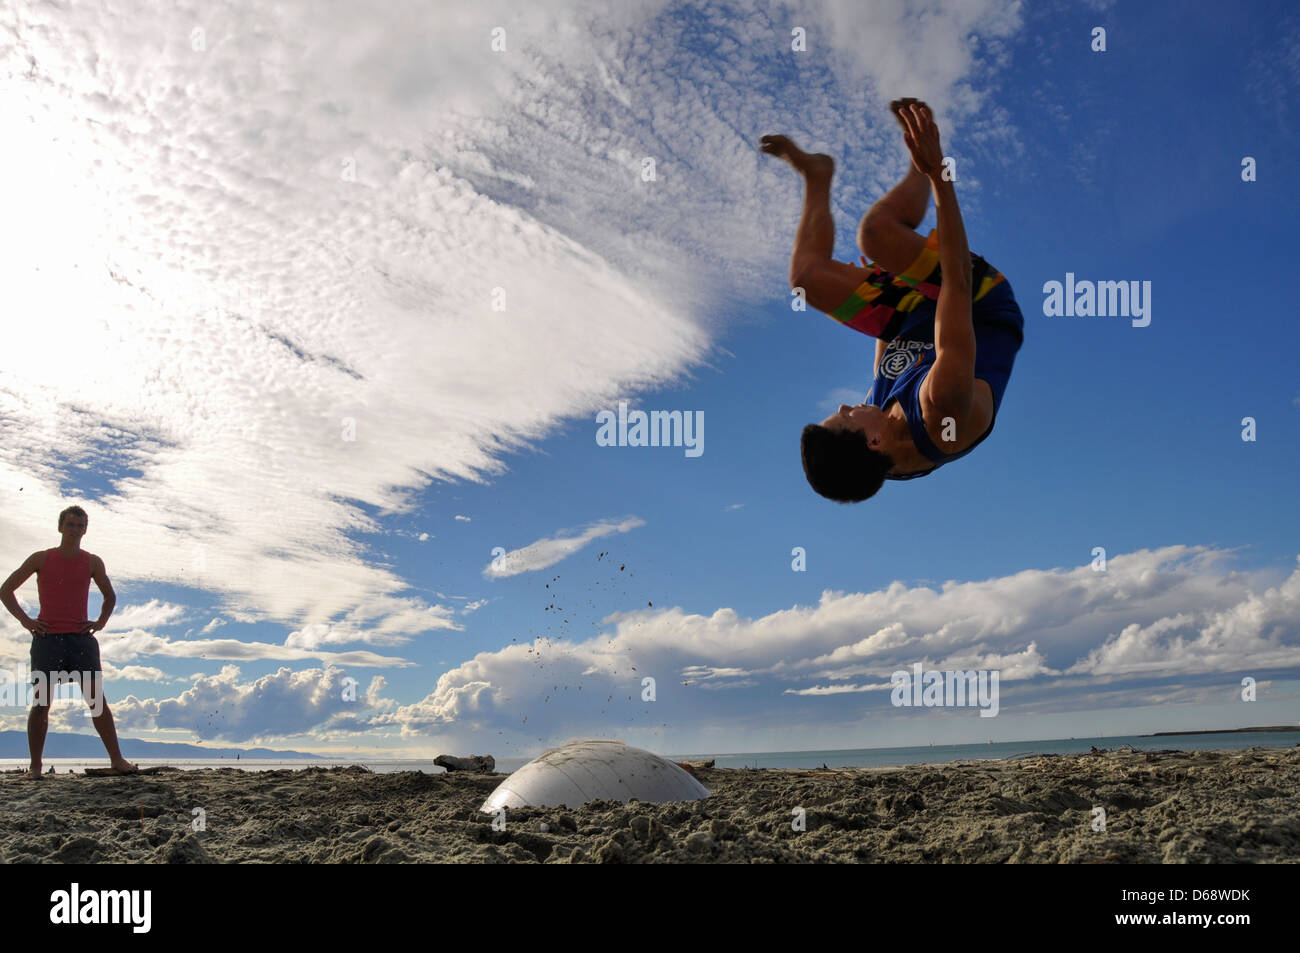 Young man somersaulting on the beach. Photographed in Nelson New Zealand. Model Re1lease Availanle Stock Photo